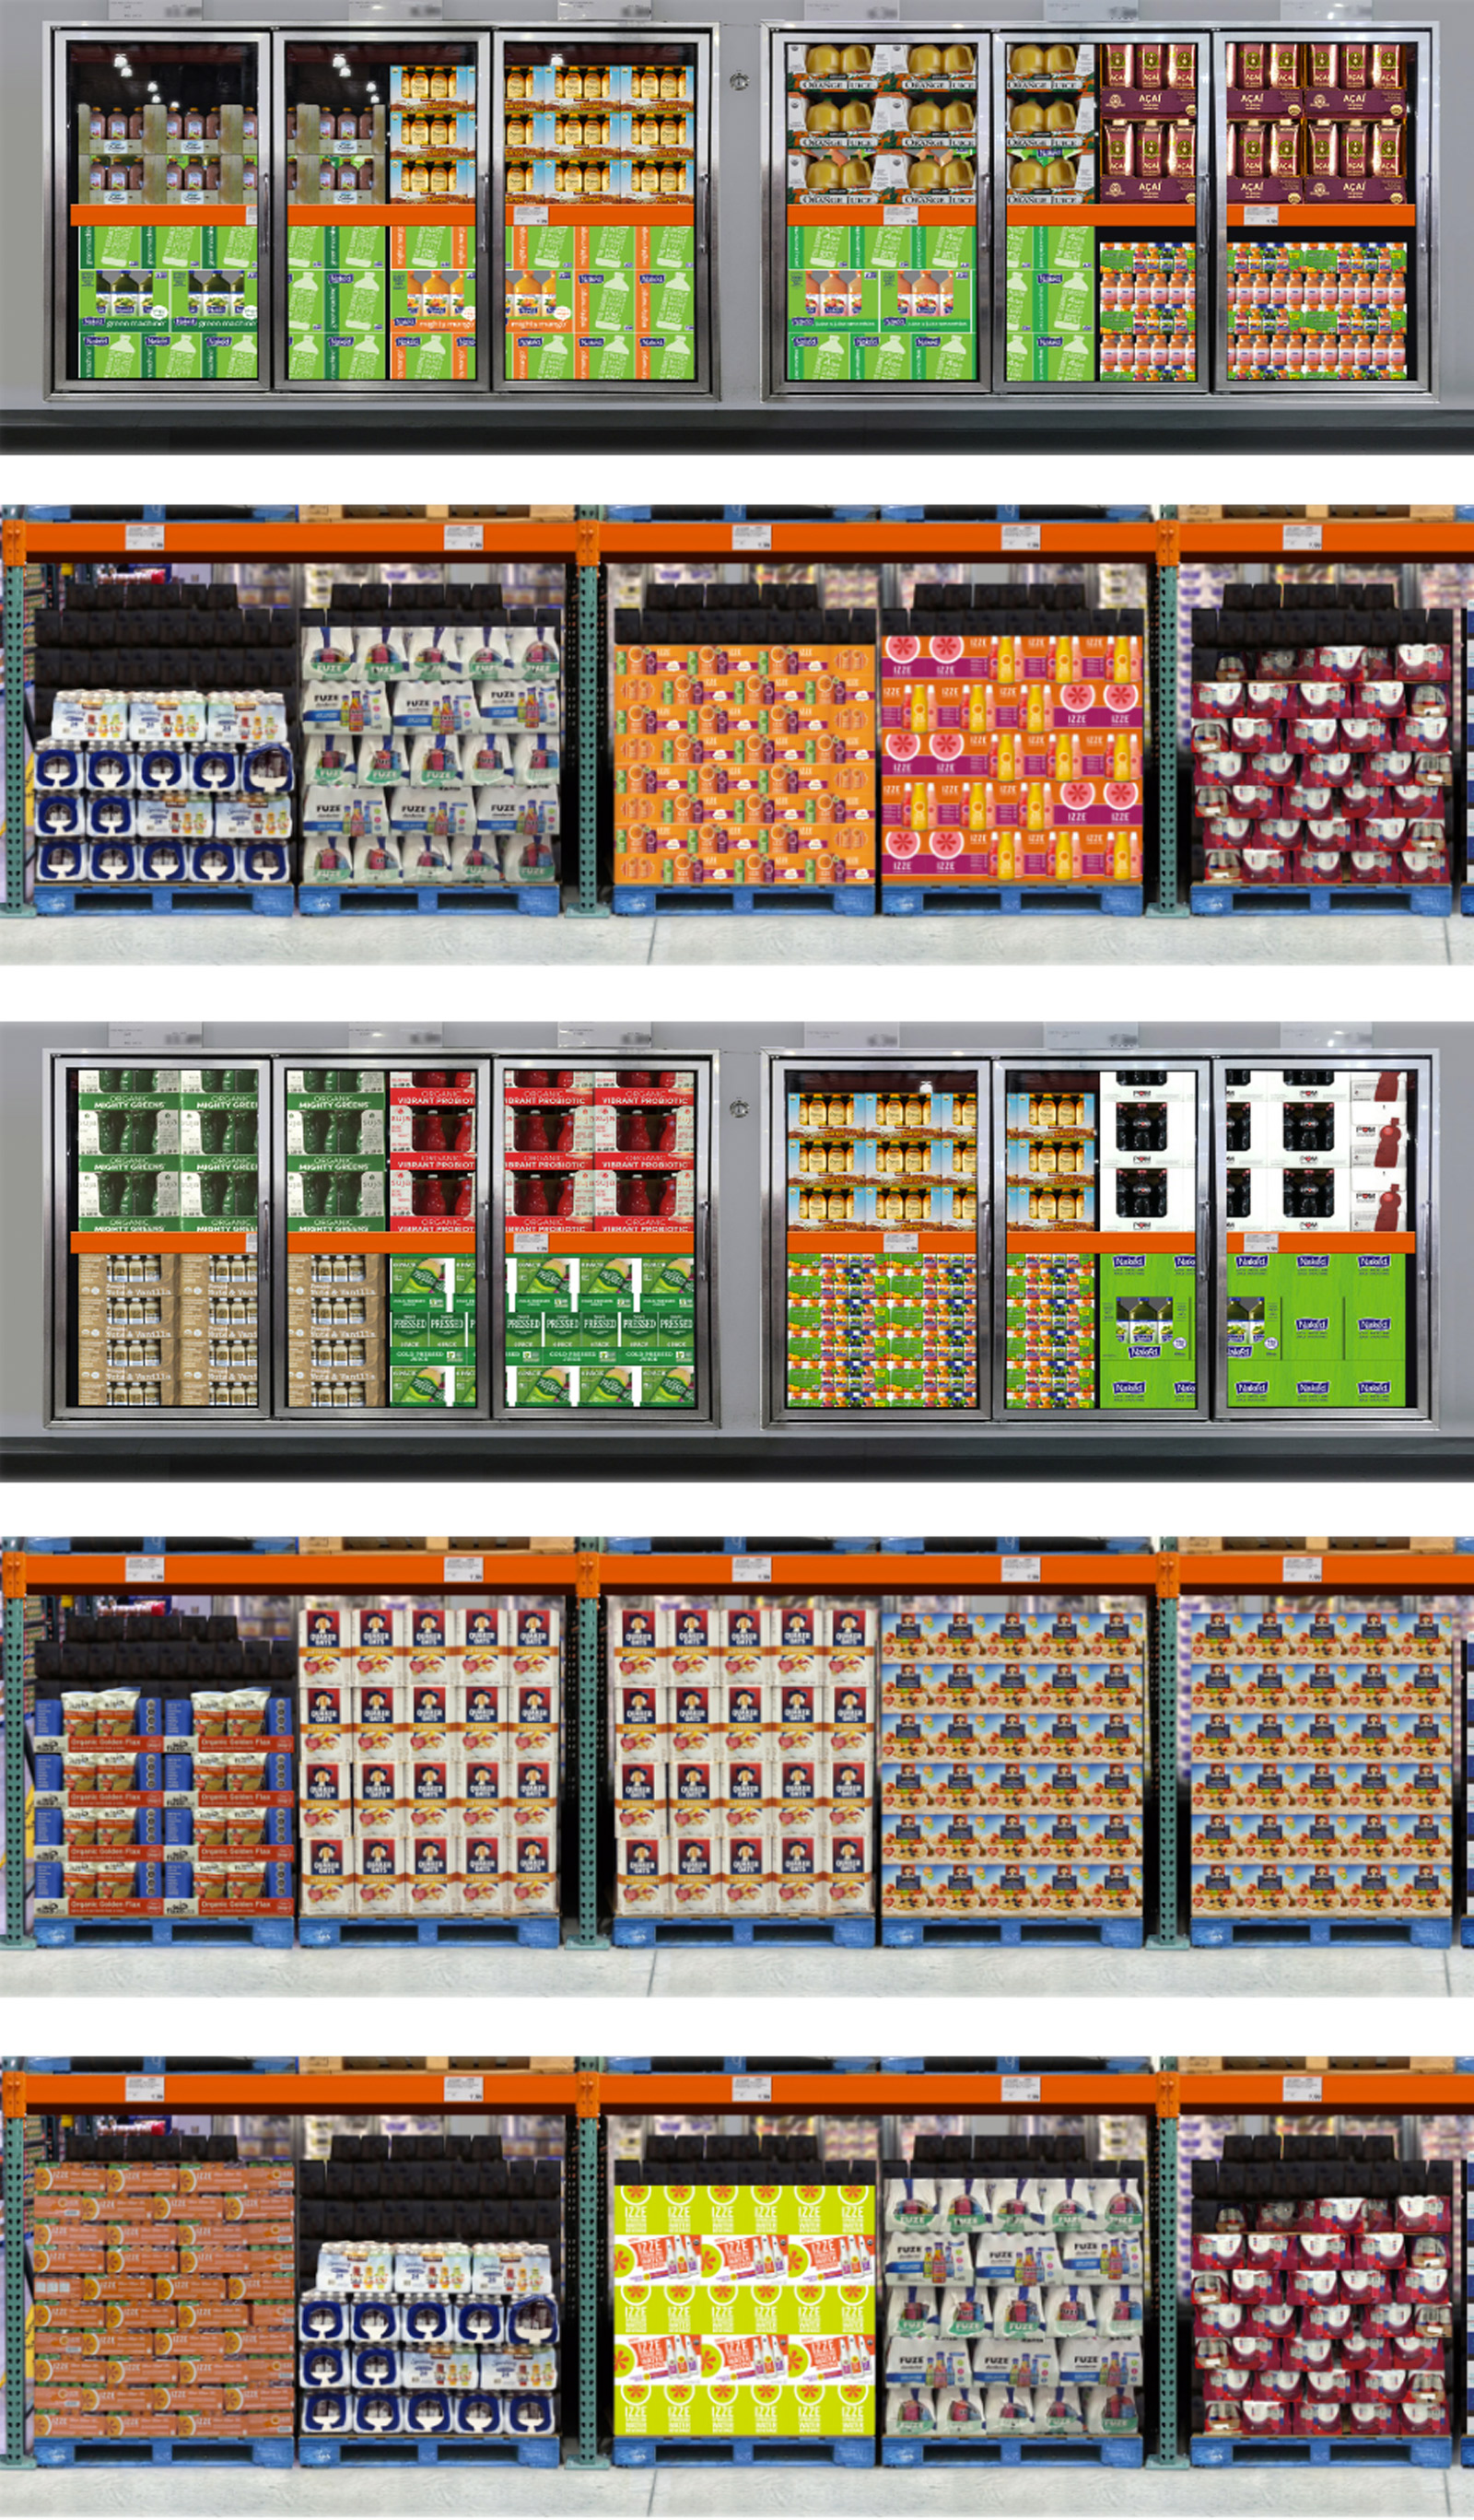 The digital tool allows you to change the pallet or package to reflect different design options and analyze effectiveness.